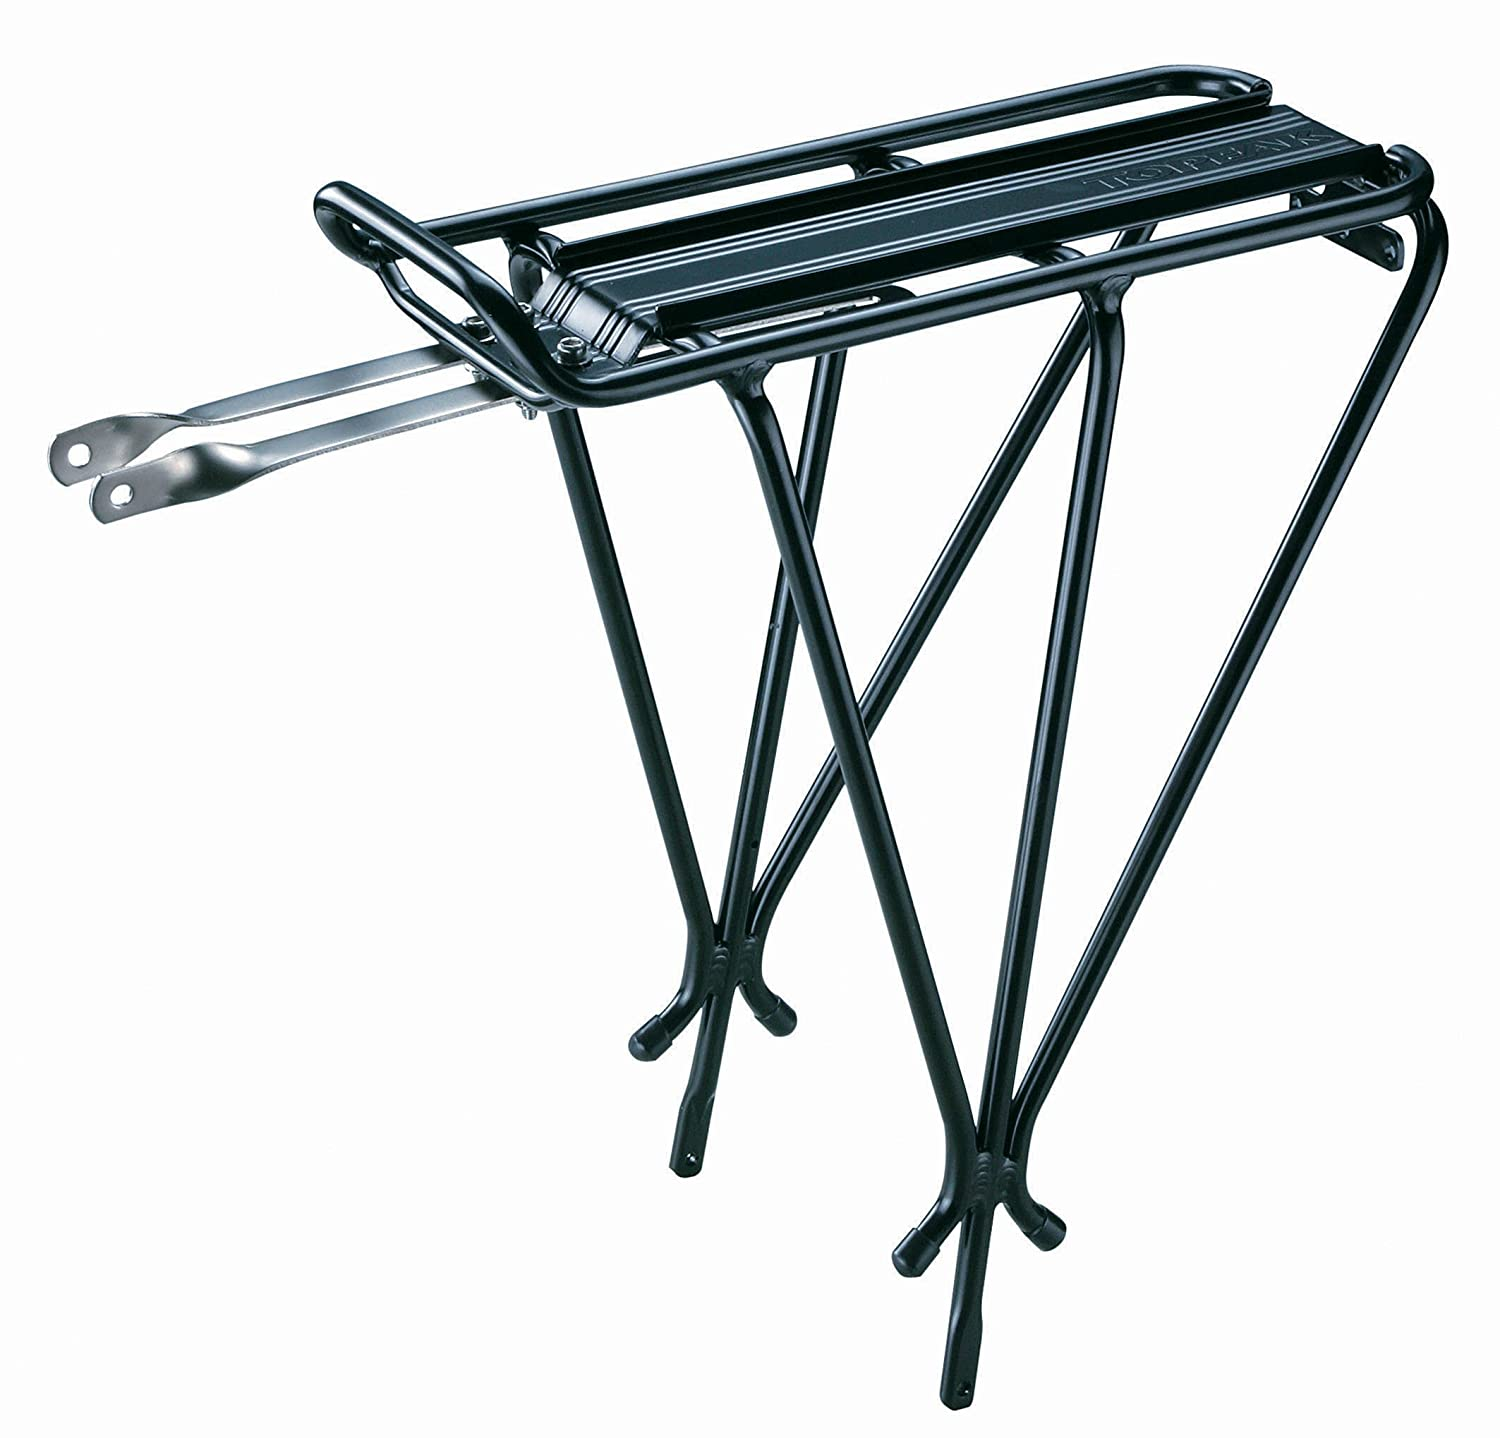 rack all parking wave storage r bicycle bike